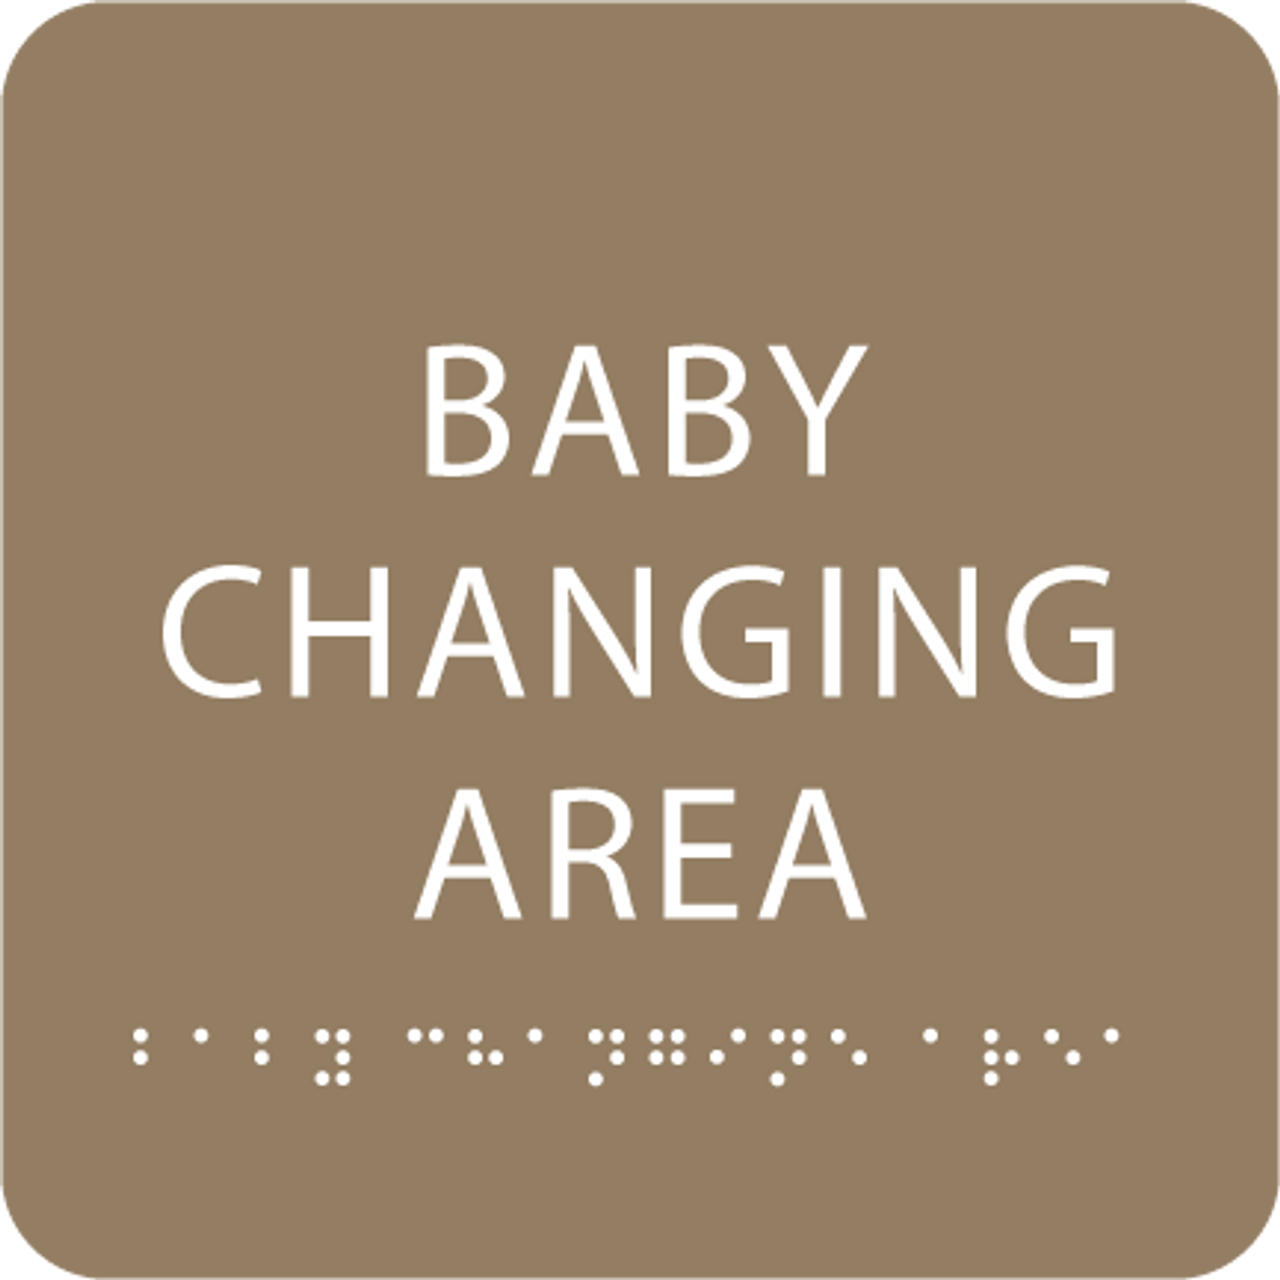 Light Brown Baby Changing Area Braille Sign